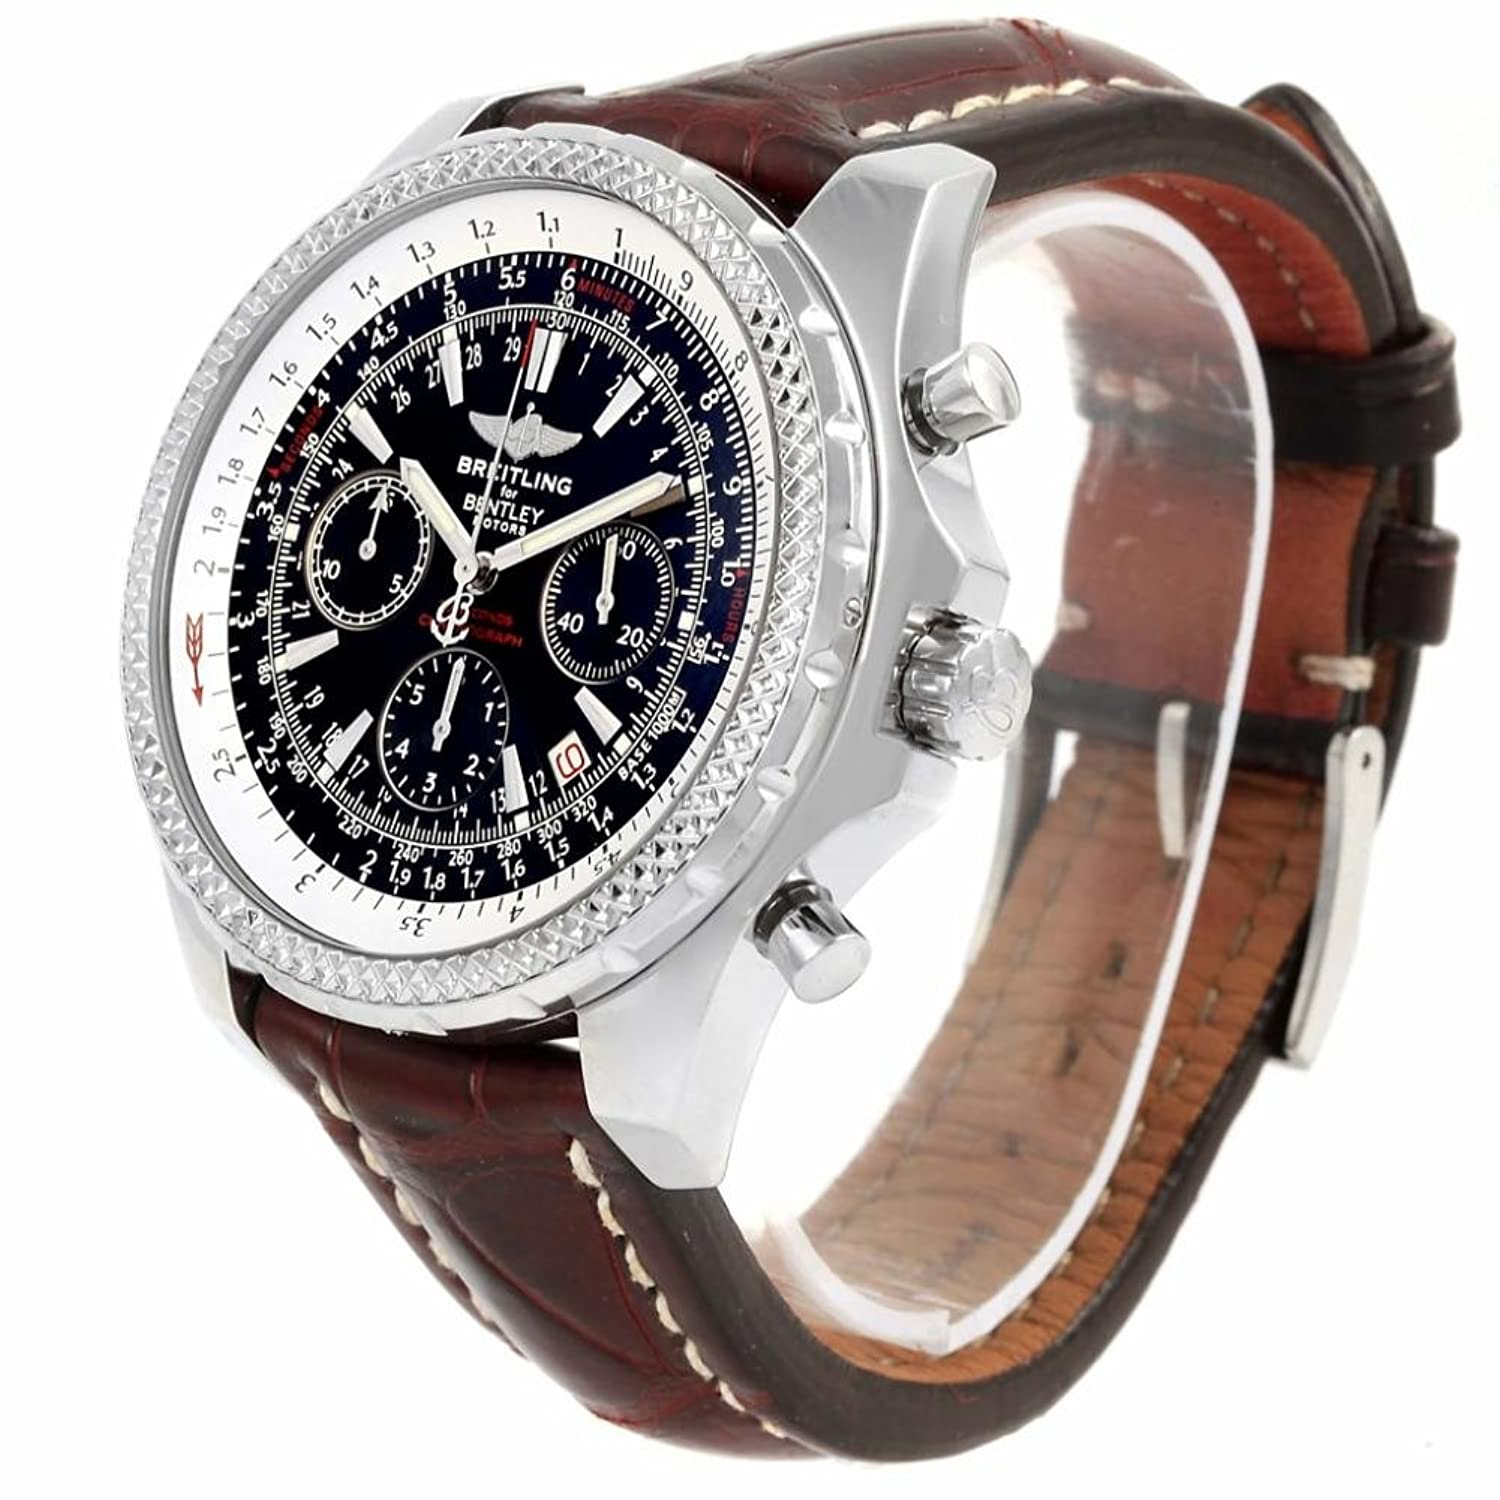 quality at replica watch category product cheap breitling high watches bentley perfect